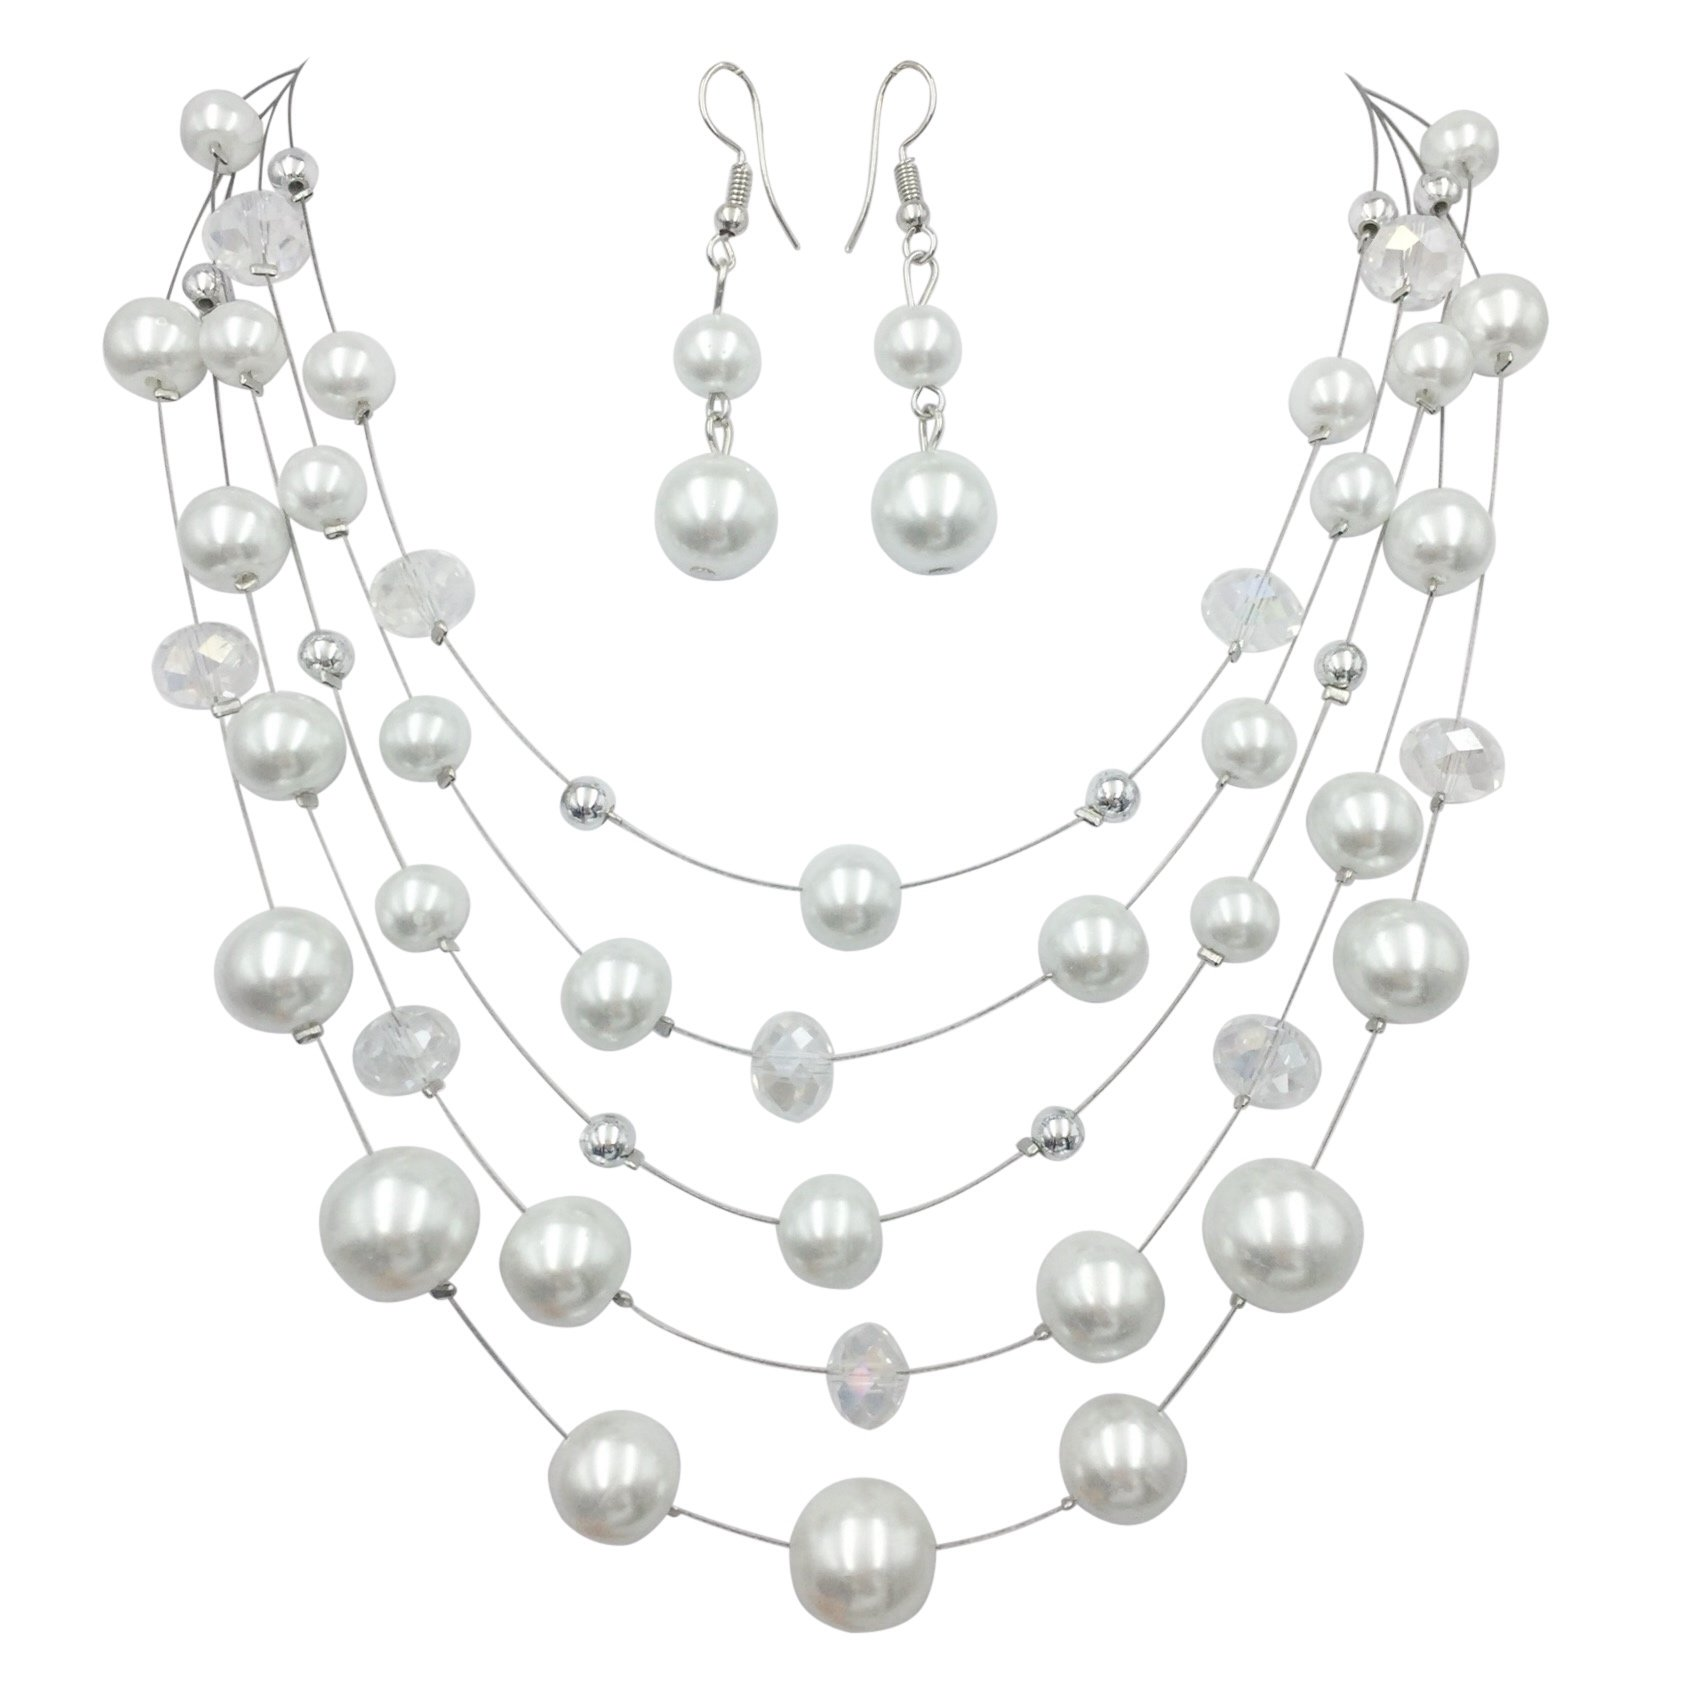 Gypsy Jewels Multi Row Beaded Illusion Wire Lightweight Necklace and Dangle Earring Set (White Simulated Pearl & Glass)